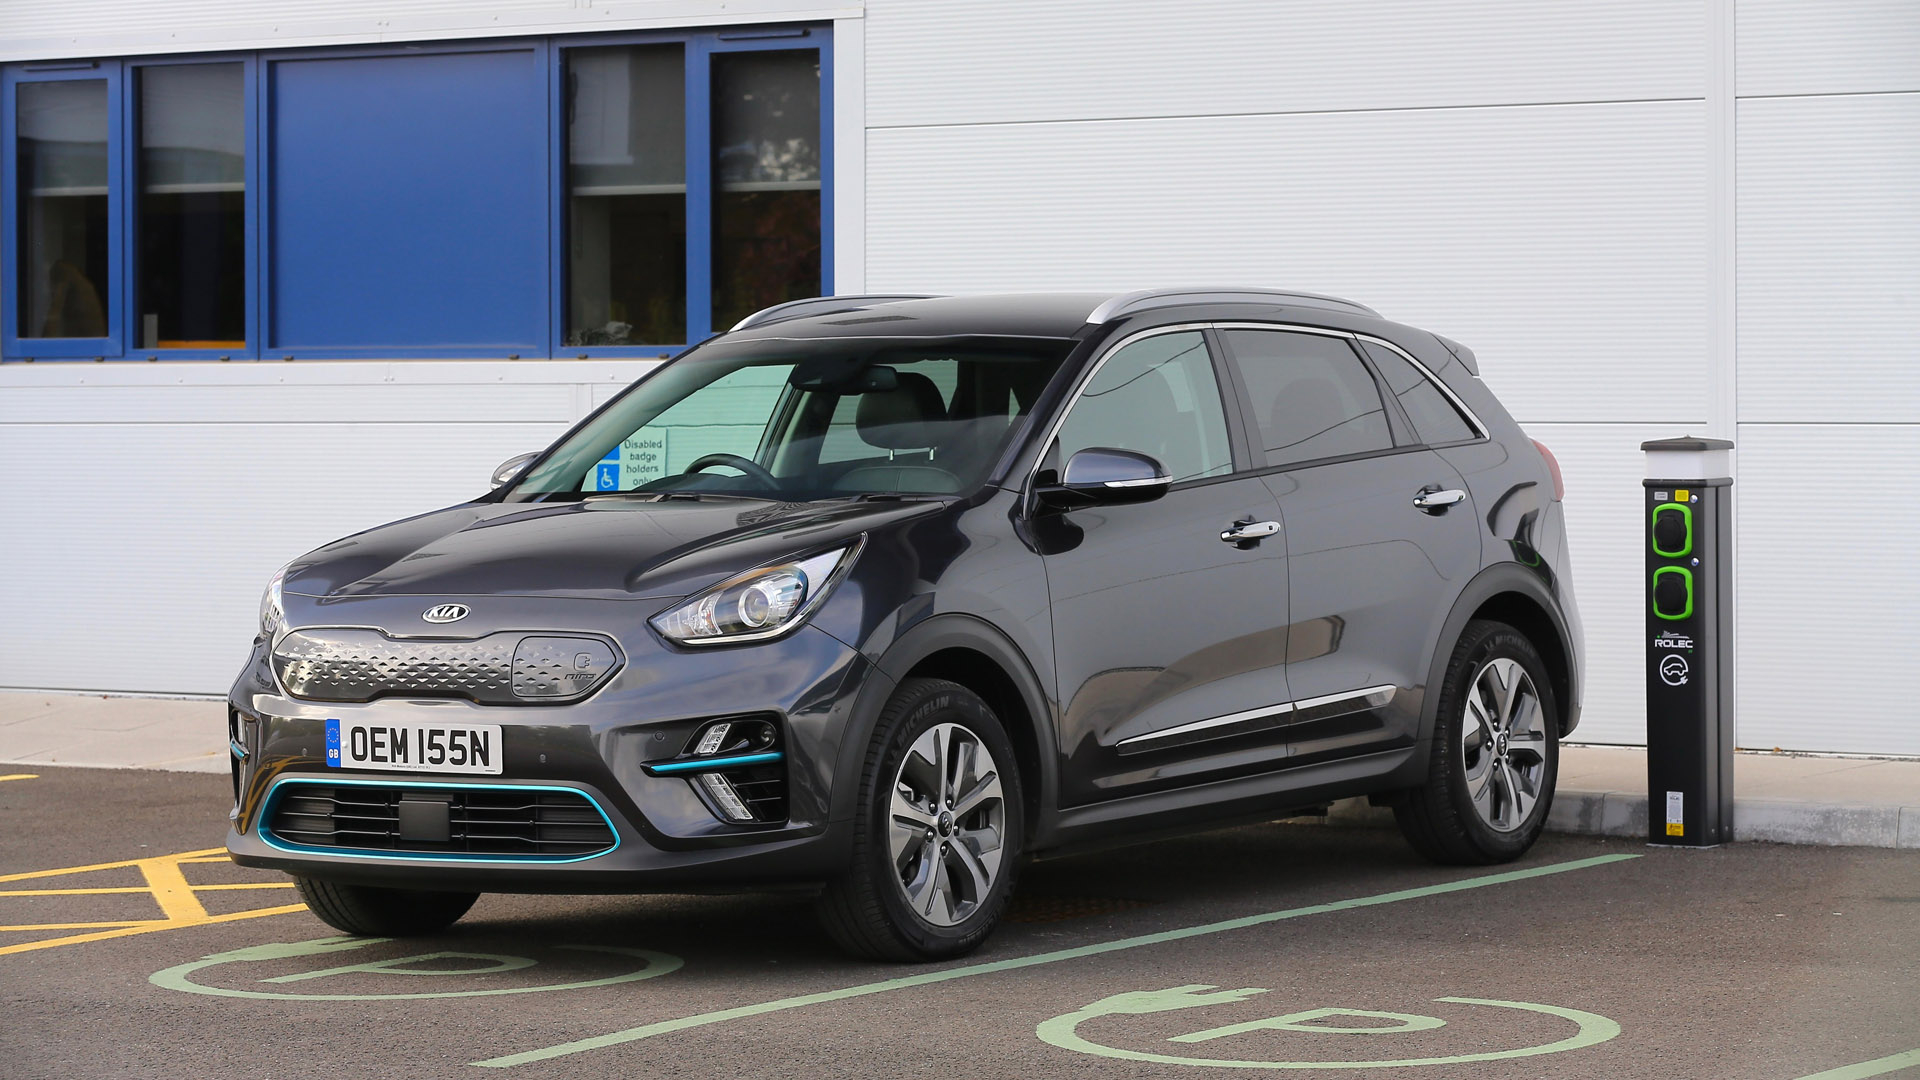 Kia Outlines Its Ev Plans For 2020 And Beyond | Totallyev - When Does 2022 Kia Niro Come Out